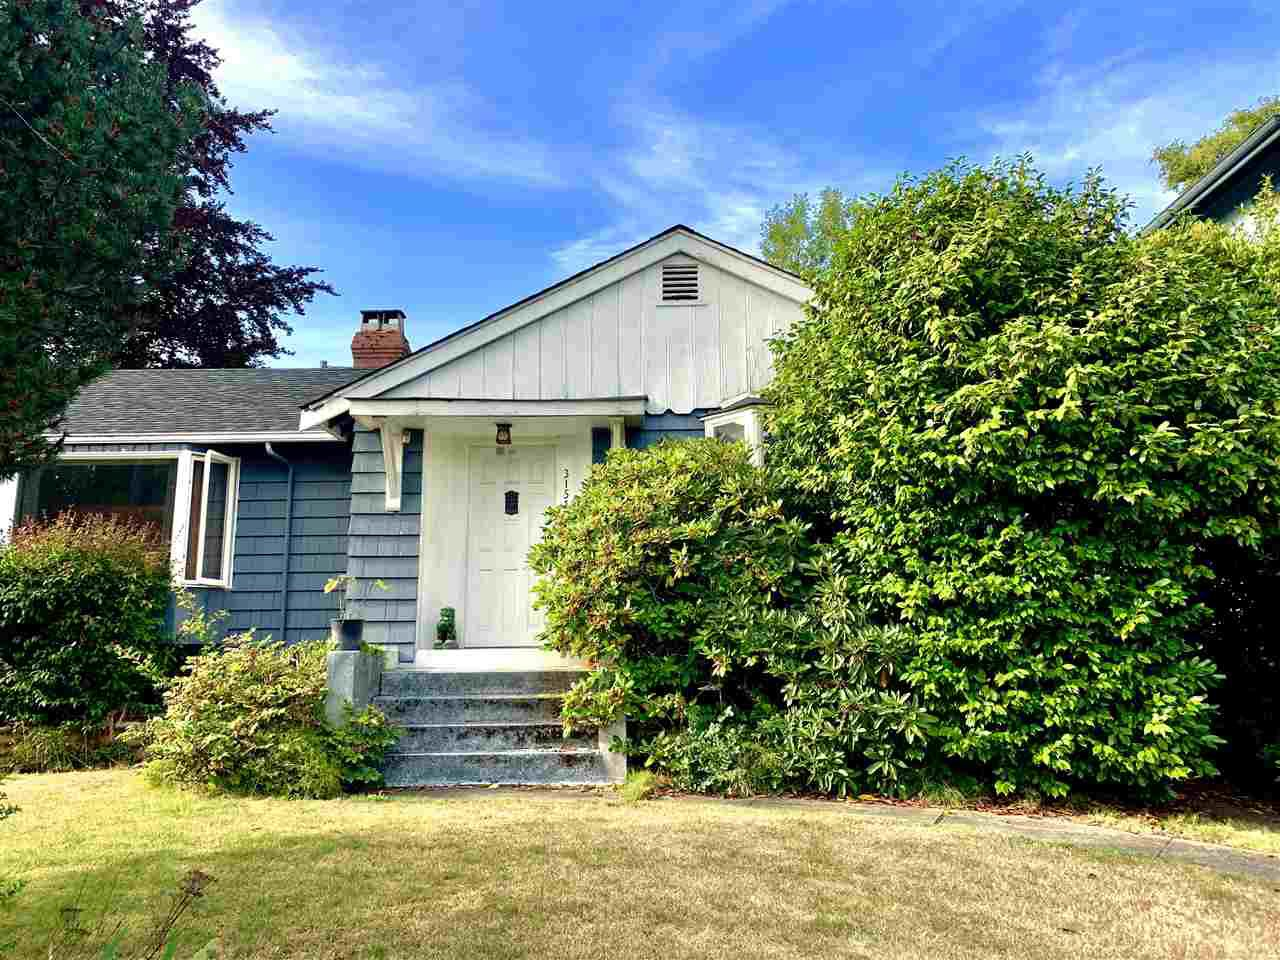 Main Photo: 3151 W 45TH Avenue in Vancouver: Kerrisdale House for sale (Vancouver West)  : MLS®# R2395654